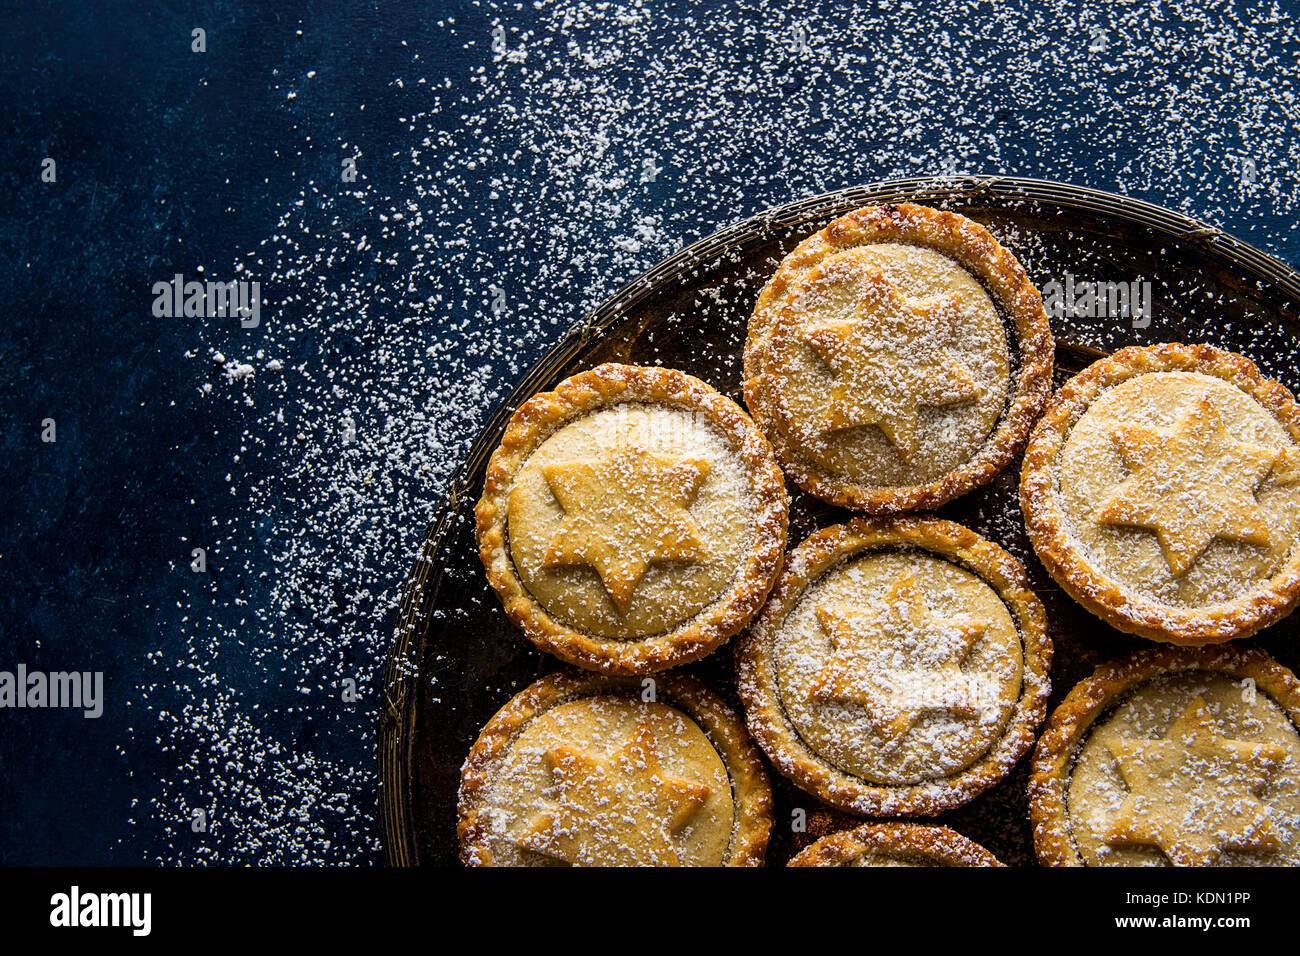 Traditional British Christmas Pastry Dessert Home Baked Mince Pies with Apple Raisins Nuts Filling Golden Shortcrust - Stock Image